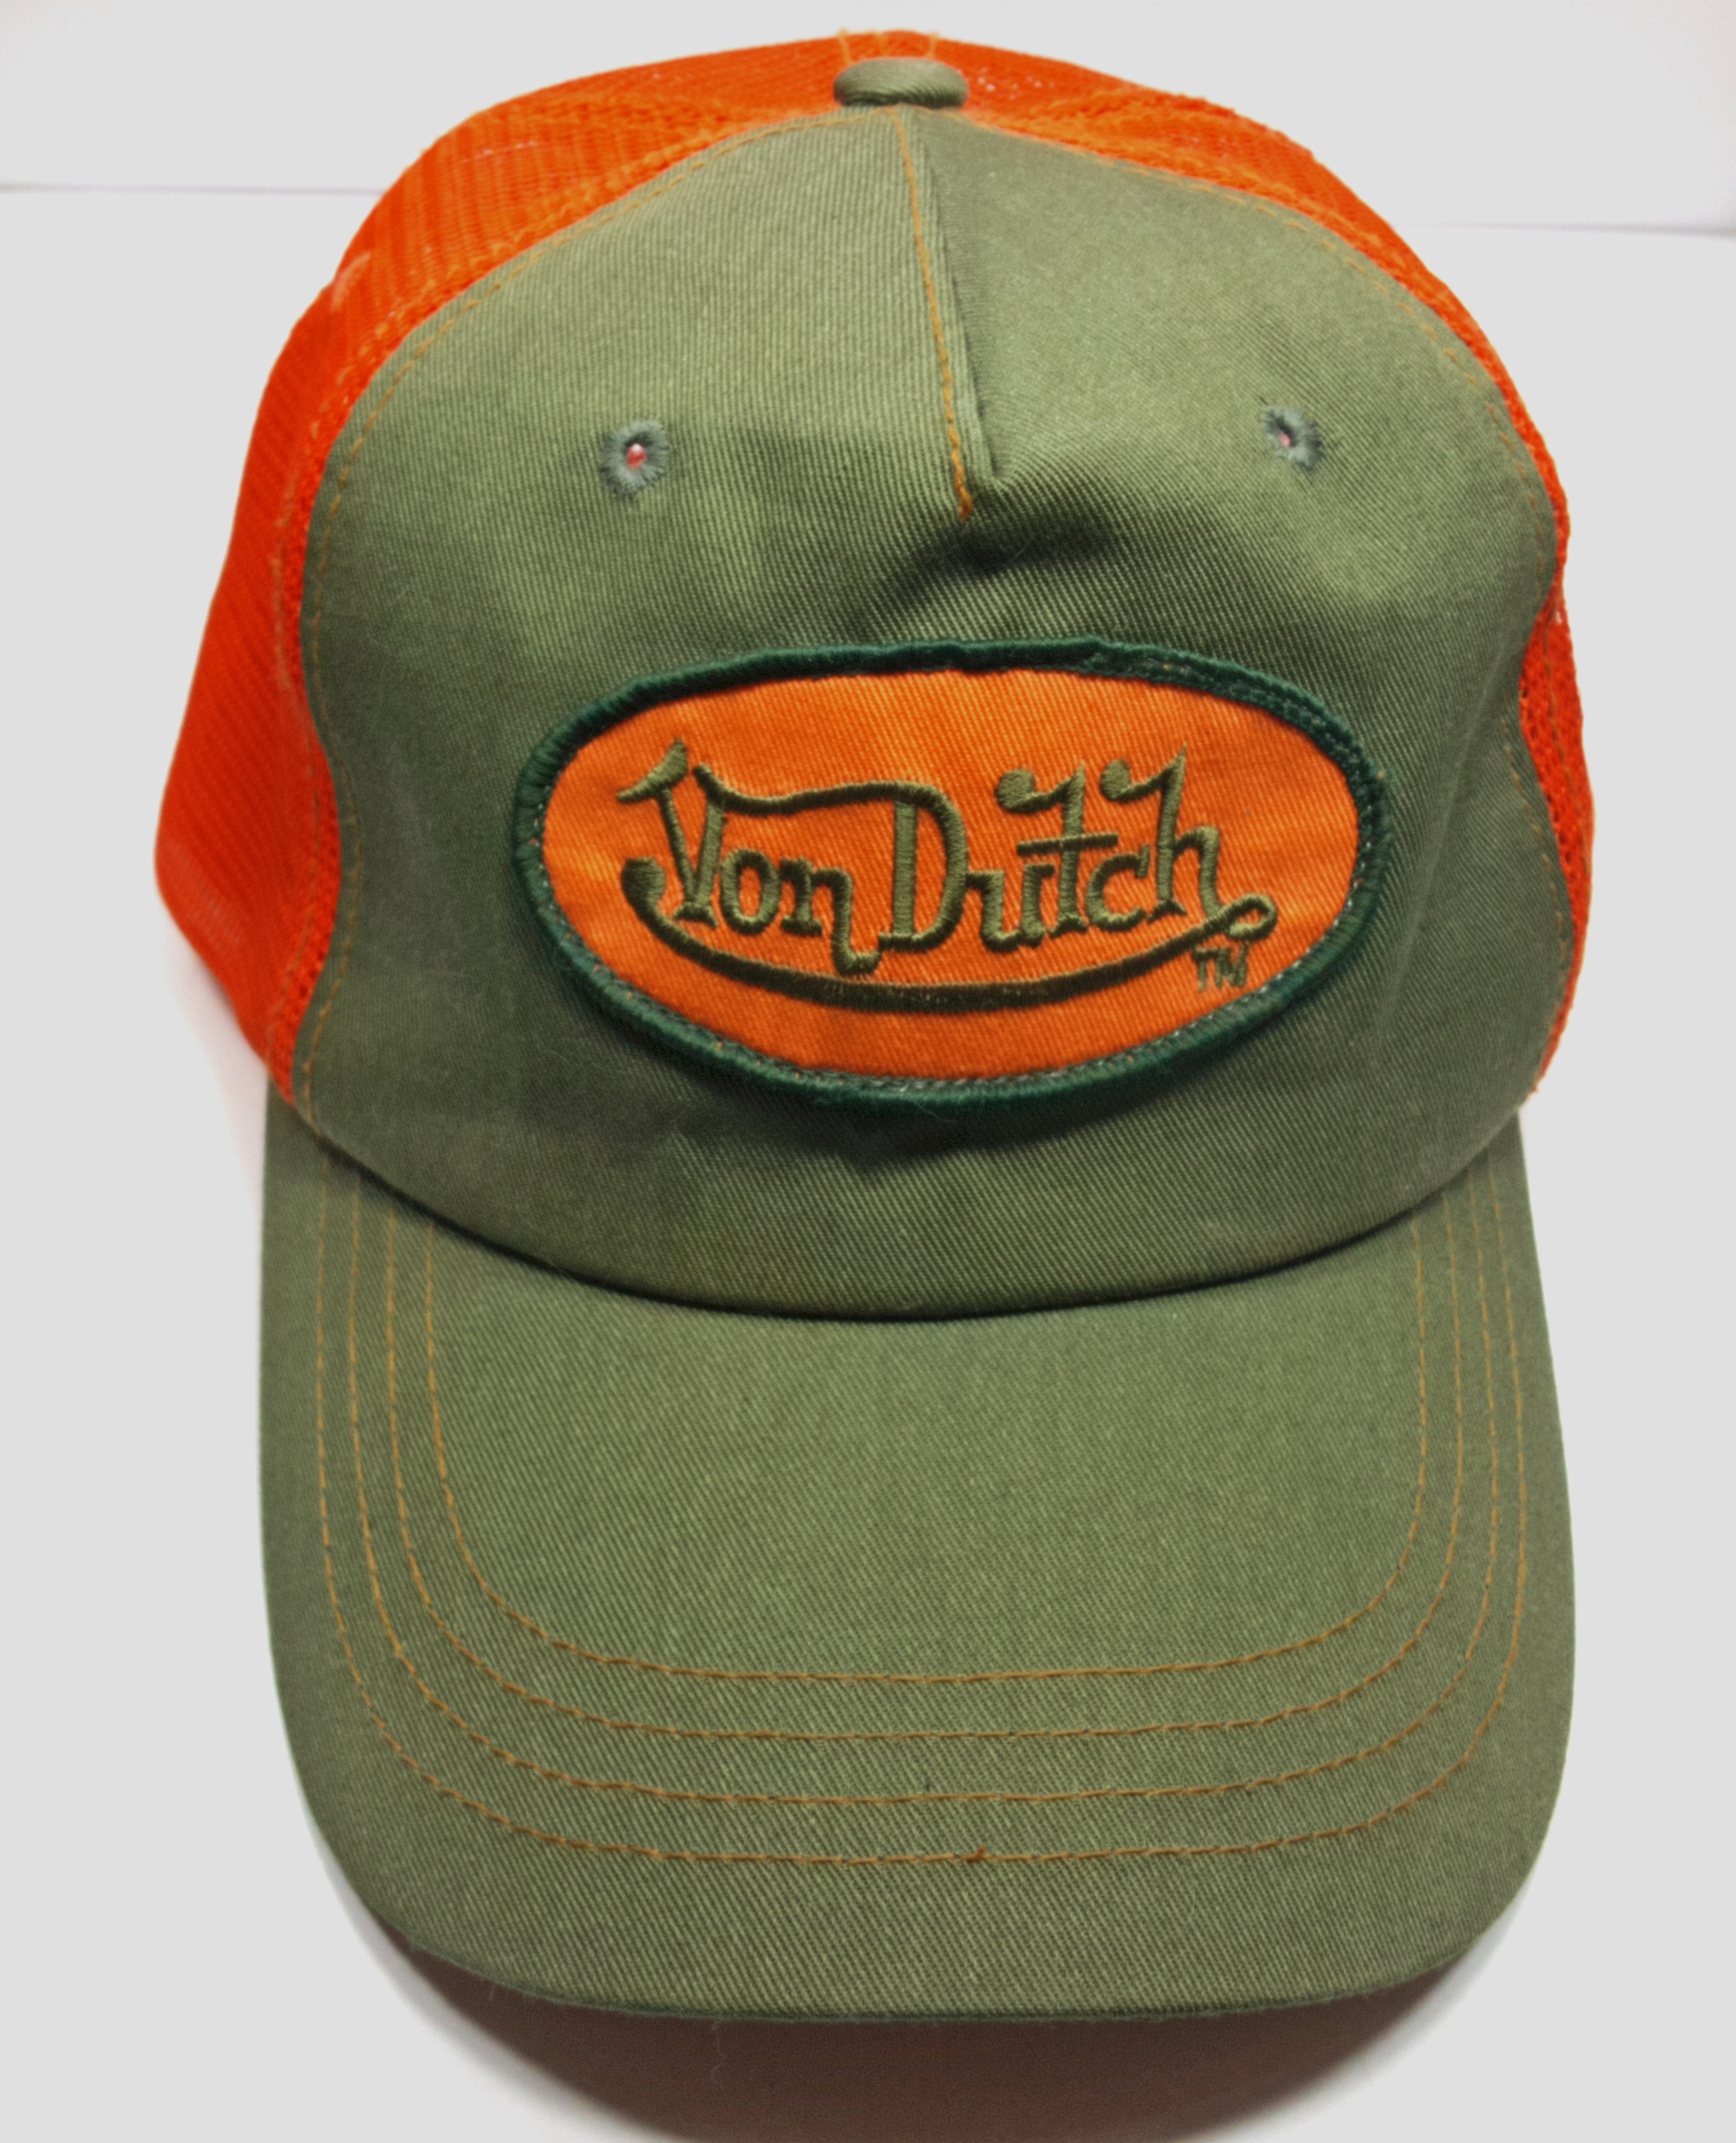 Listed for sale is this vintage 1990 s Von Dutch brand snapback mesh  trucker hat with spell out patch in orange and green. KUSTOM MADE VON DUTCH  ORIGINALS ... 2ff5806895a